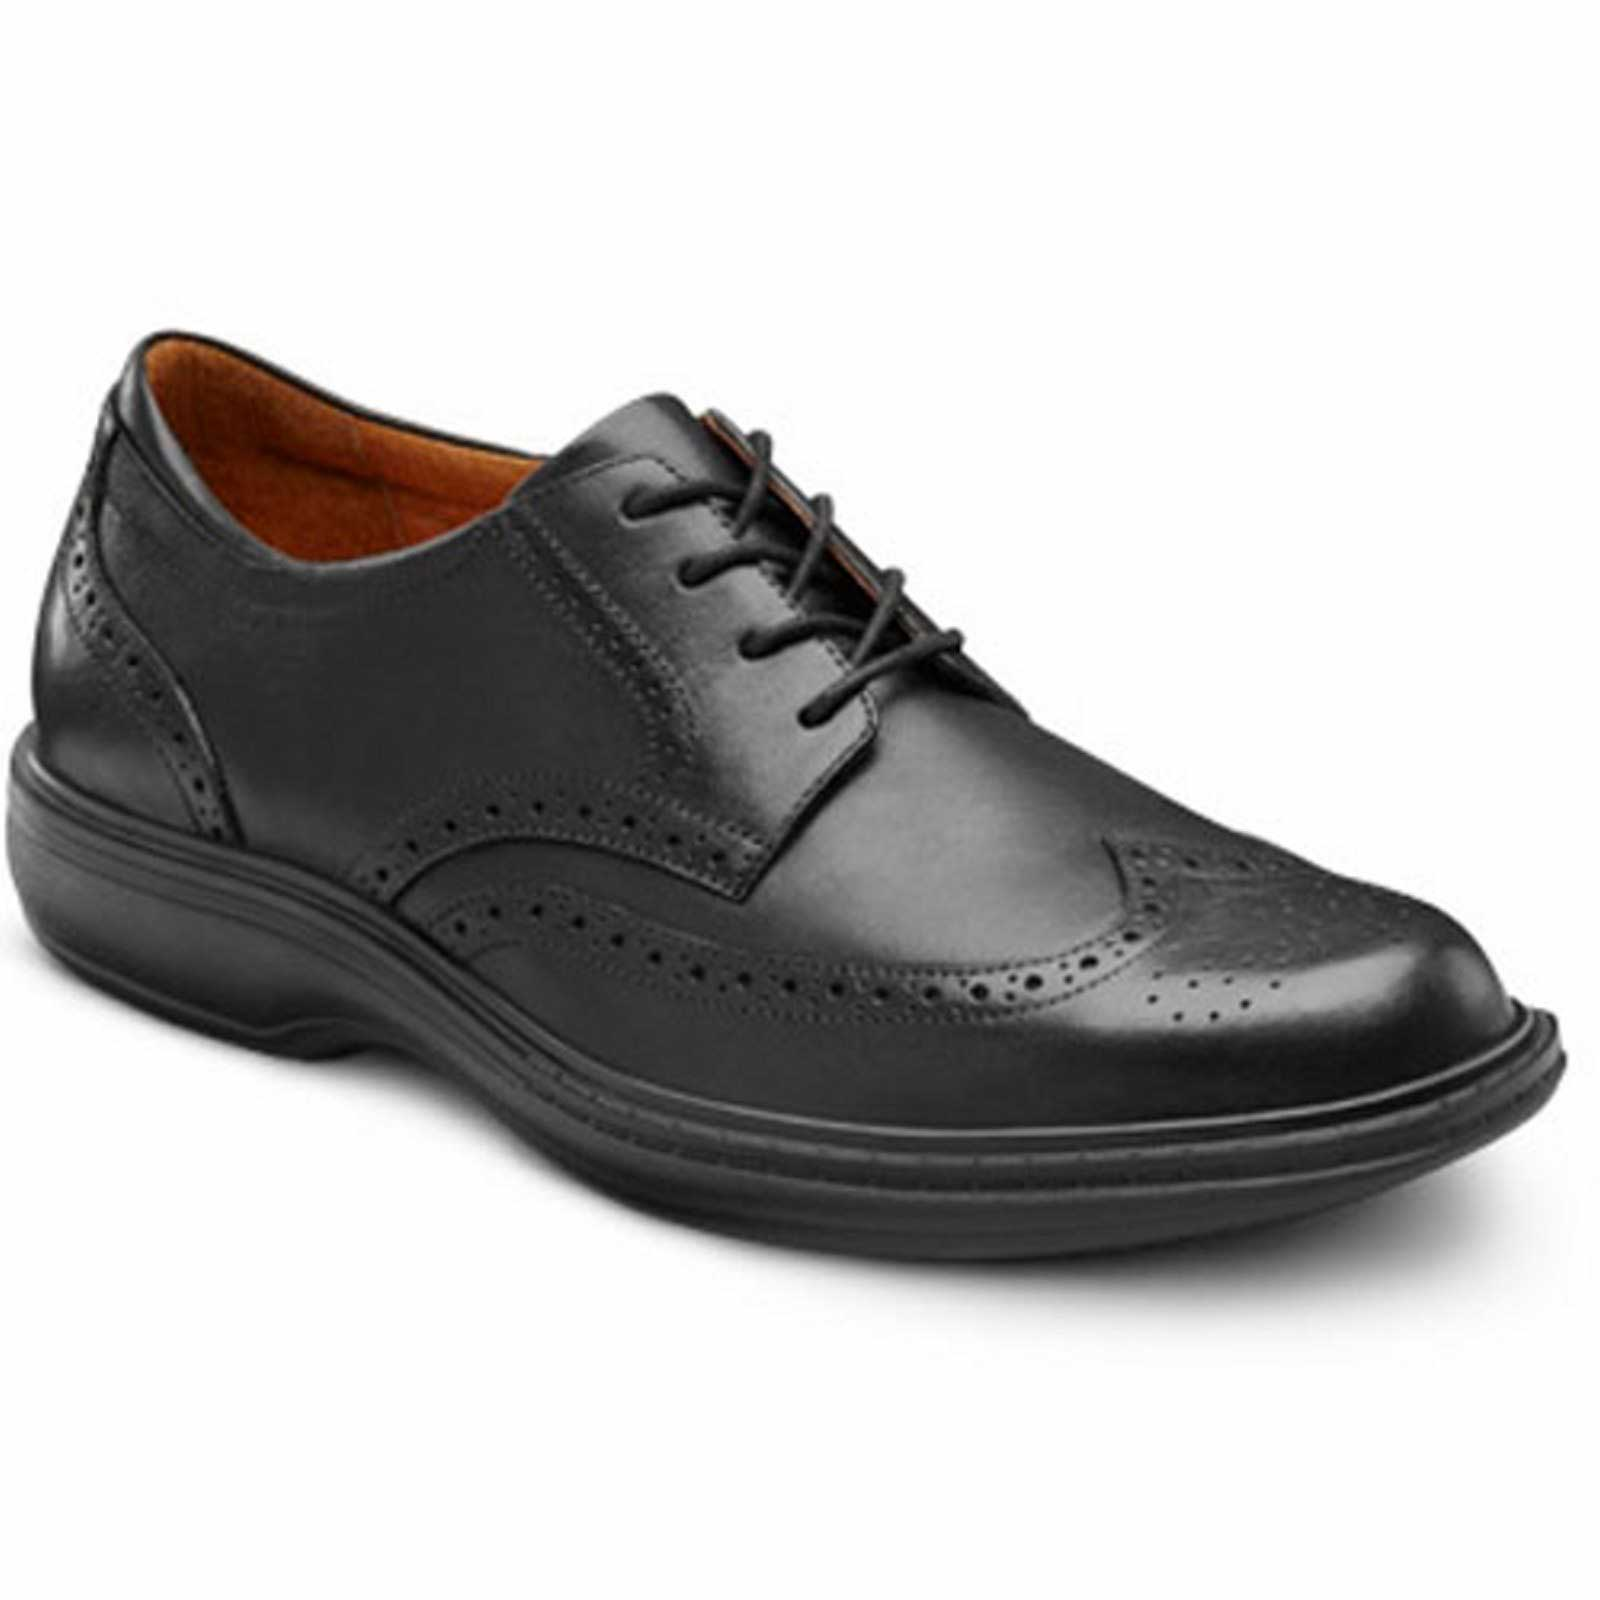 Dr. Comfort's shoes